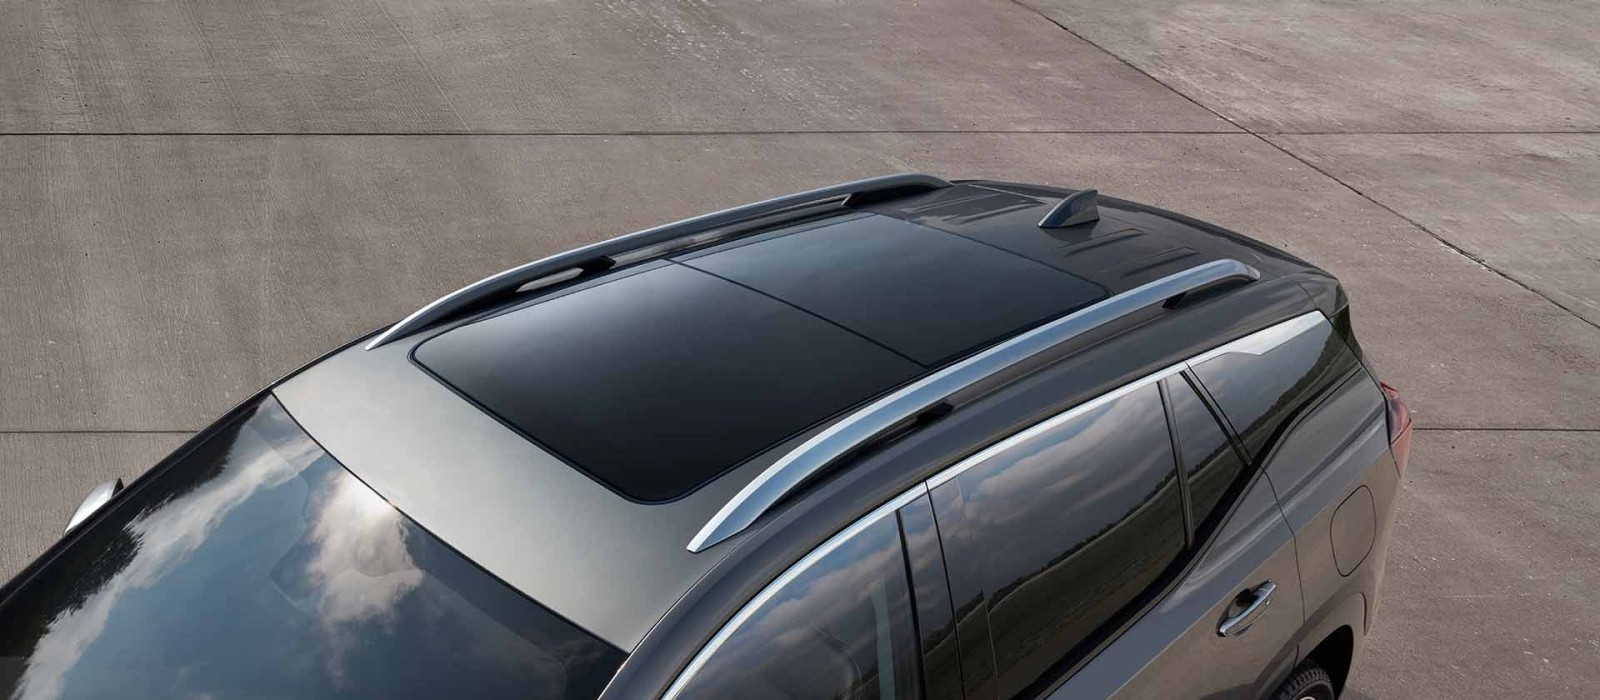 2018 GMC Terrain Panoramic Sunroof